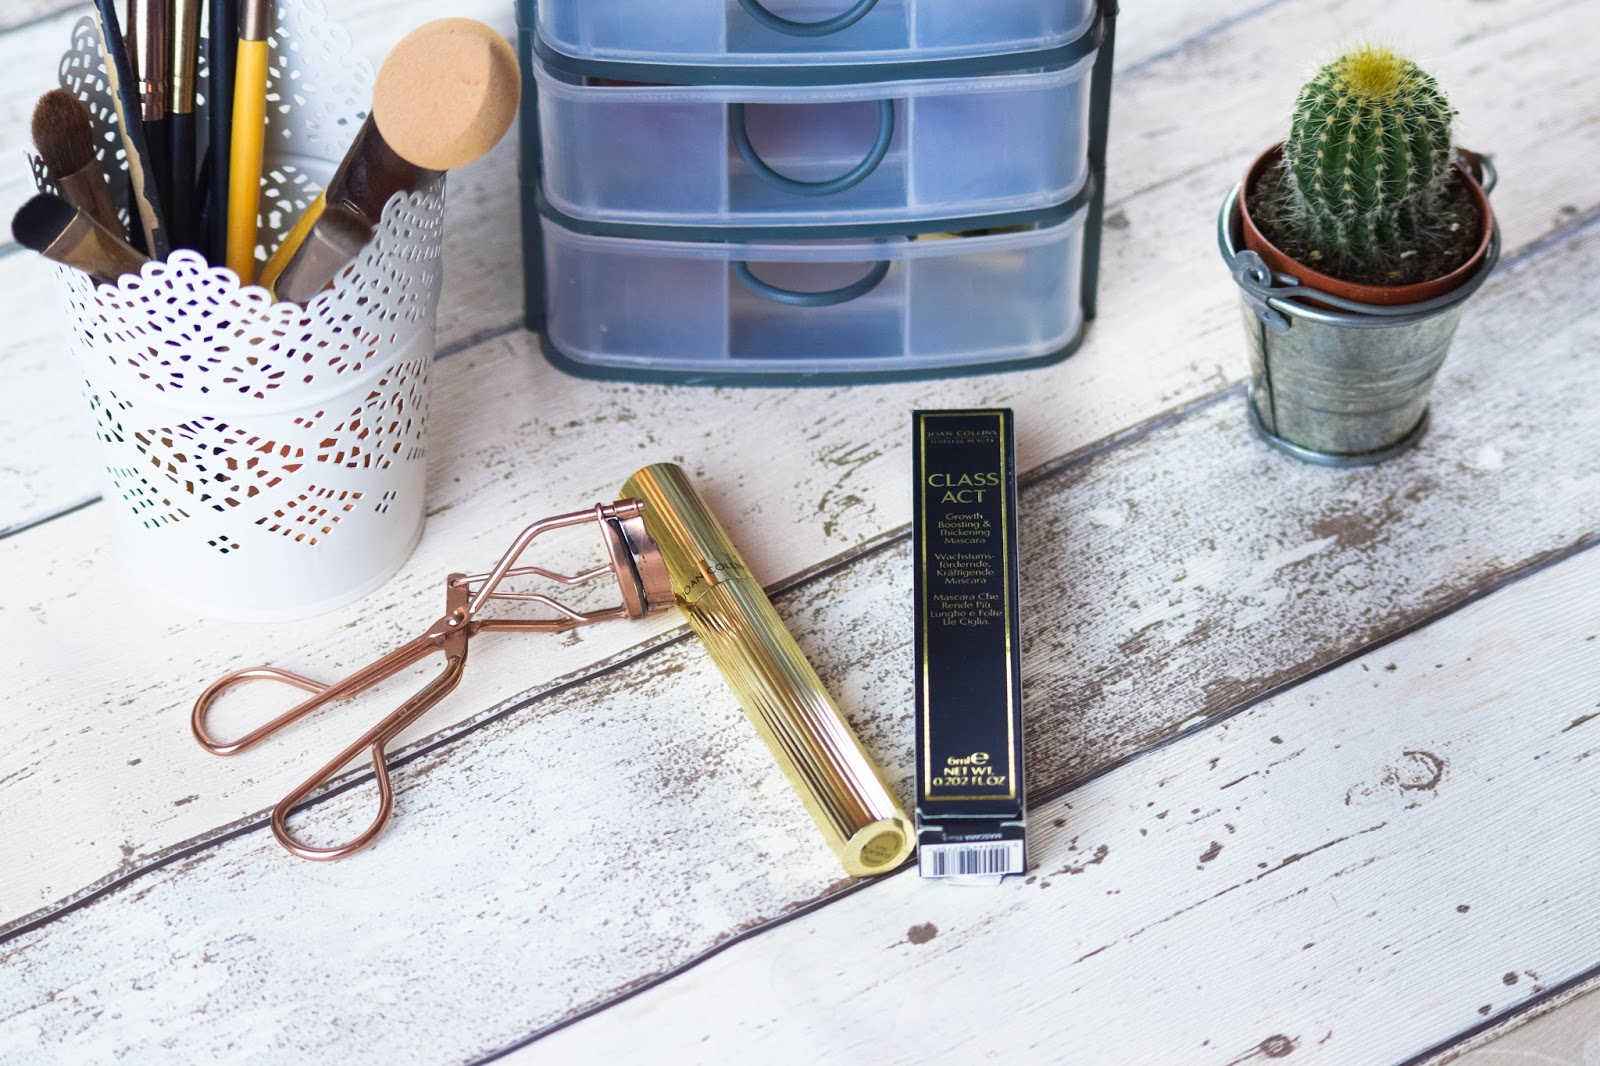 lebellelavie - A Class Act Mascara from Joan Collins Beauty